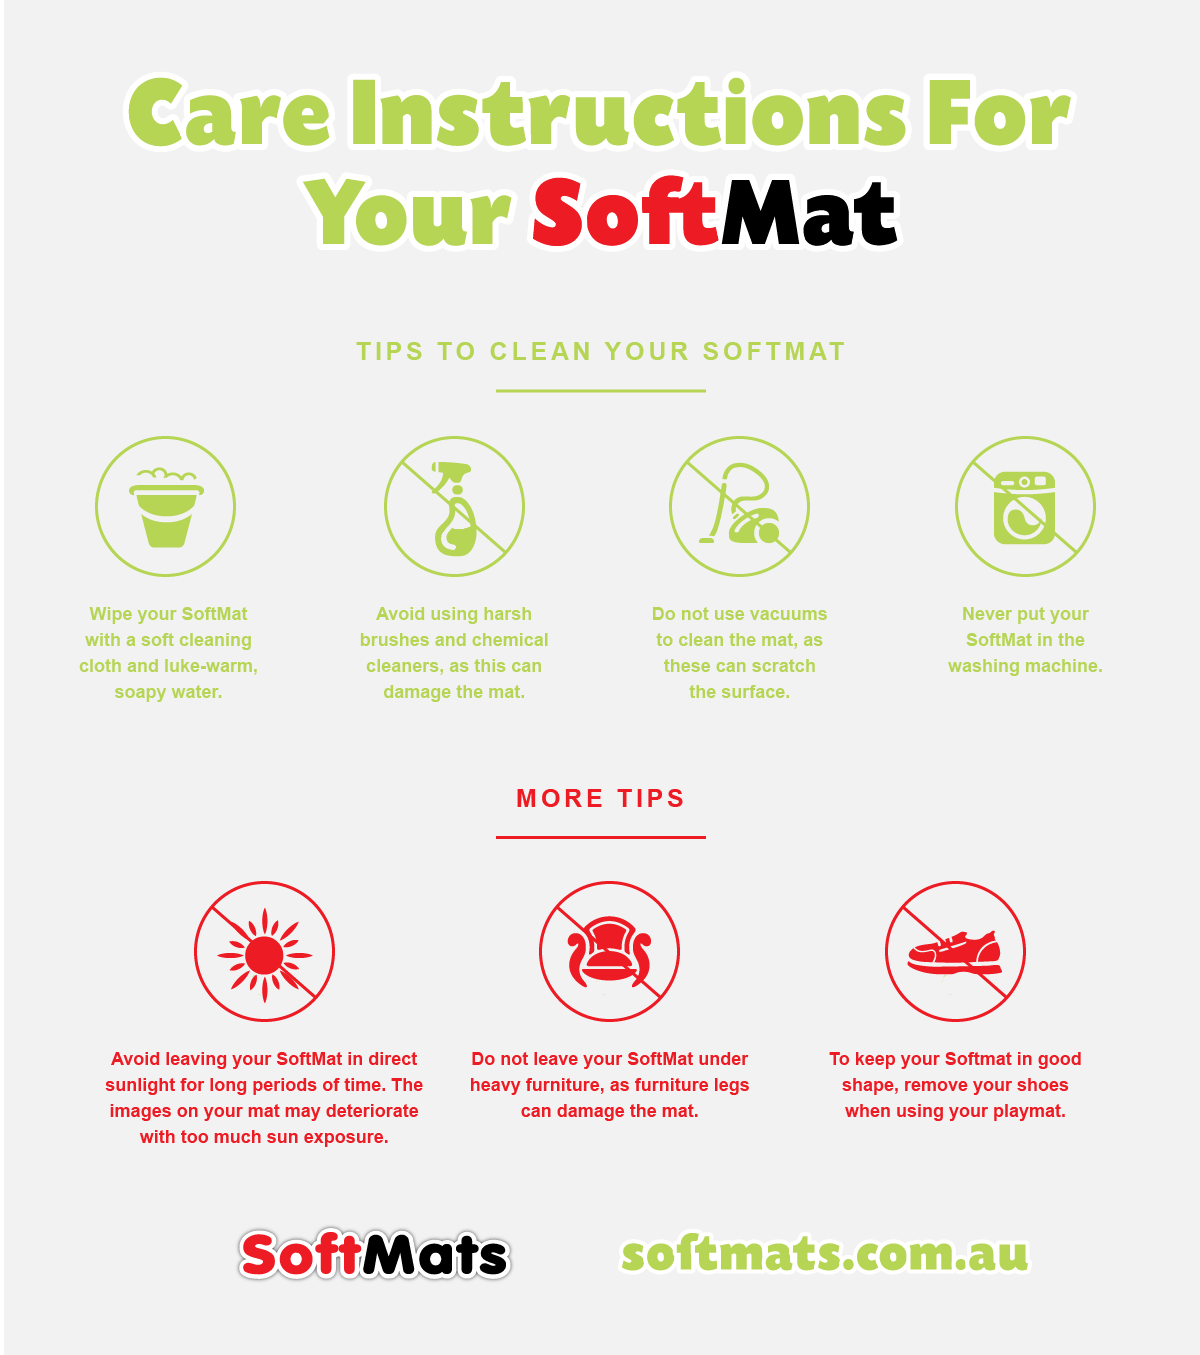 softmats-infographics-careinstructionsforyoursoftmat-01.png